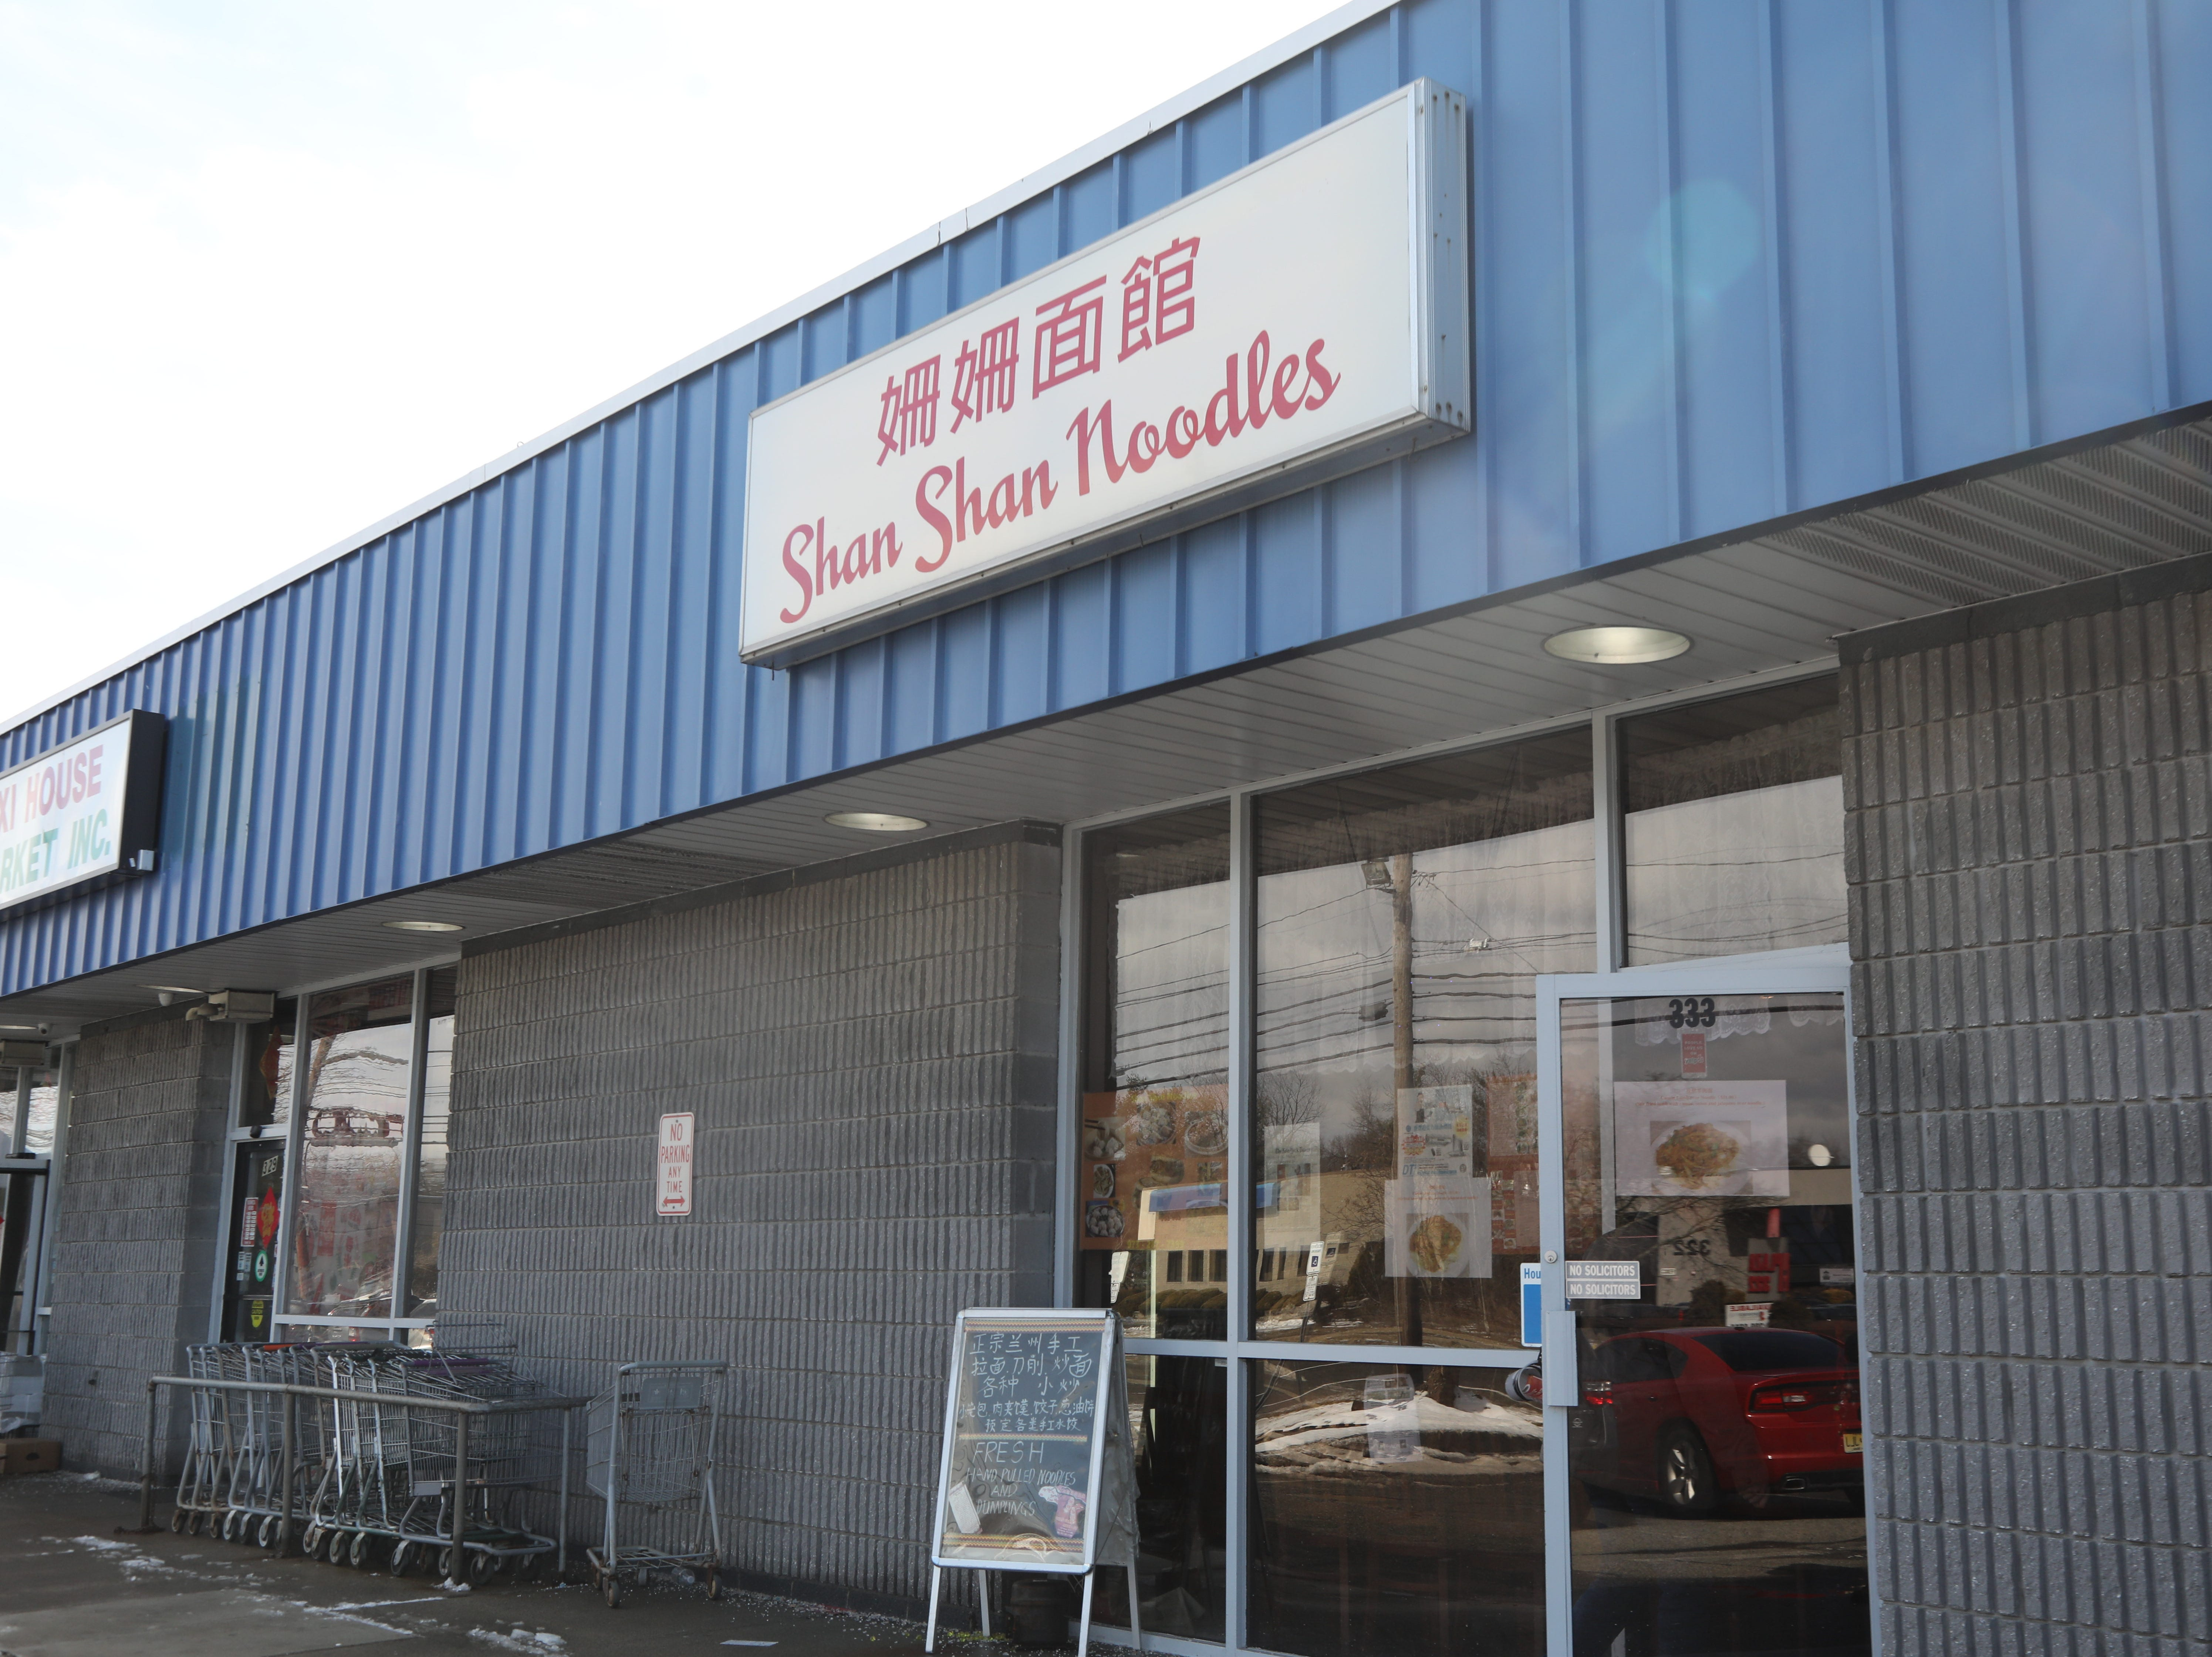 Exterior of Shan Shan Noodles on Rt. 46 east.